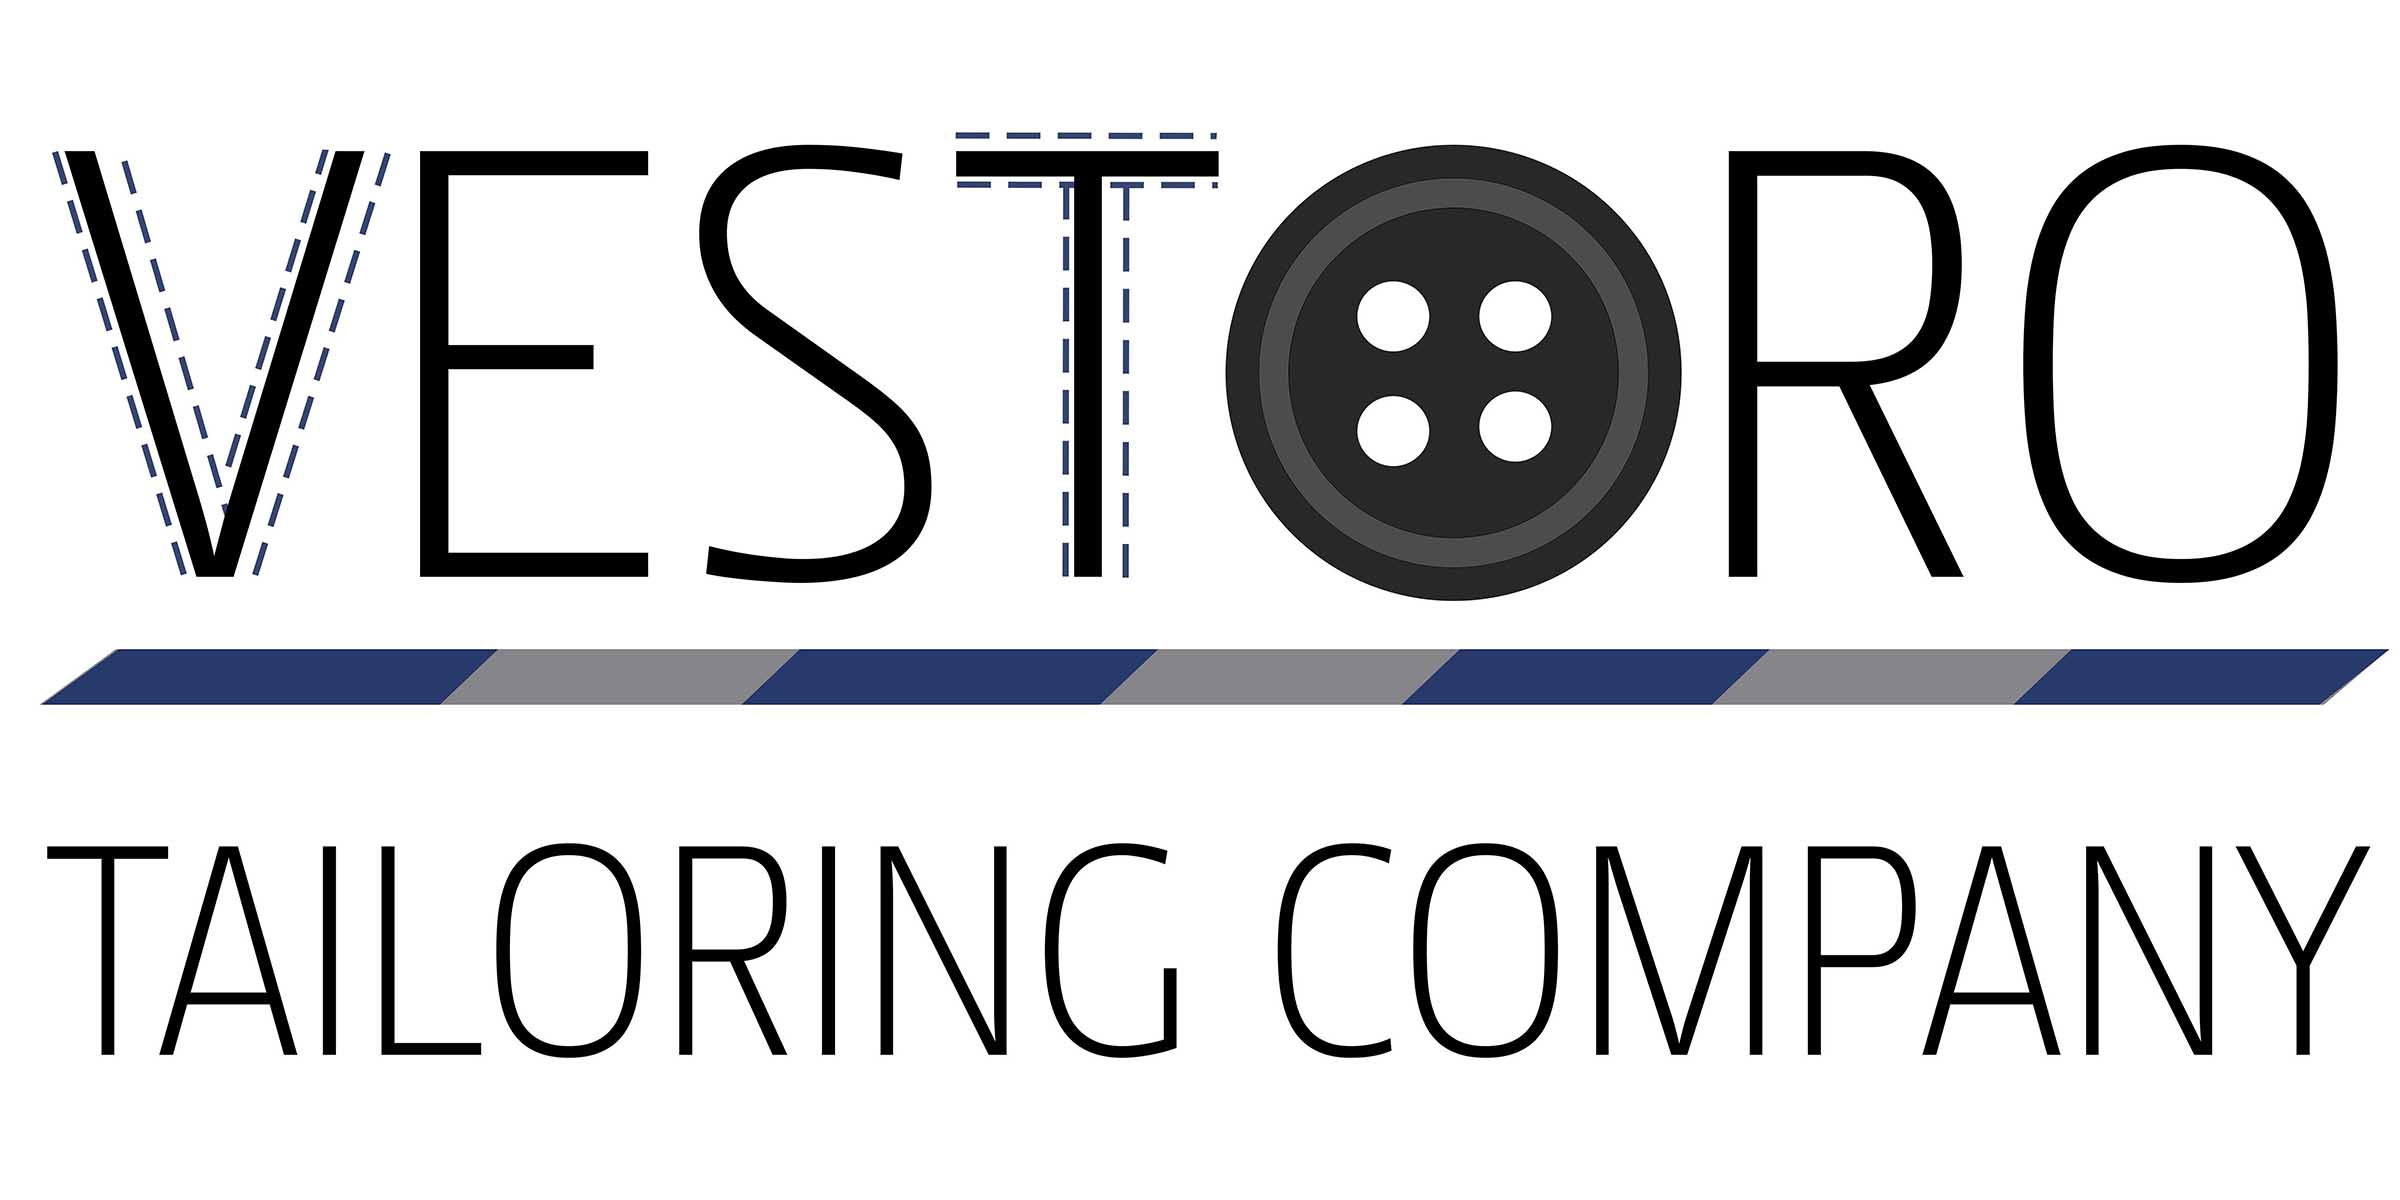 Vestoro Logo March 2018 lowres1